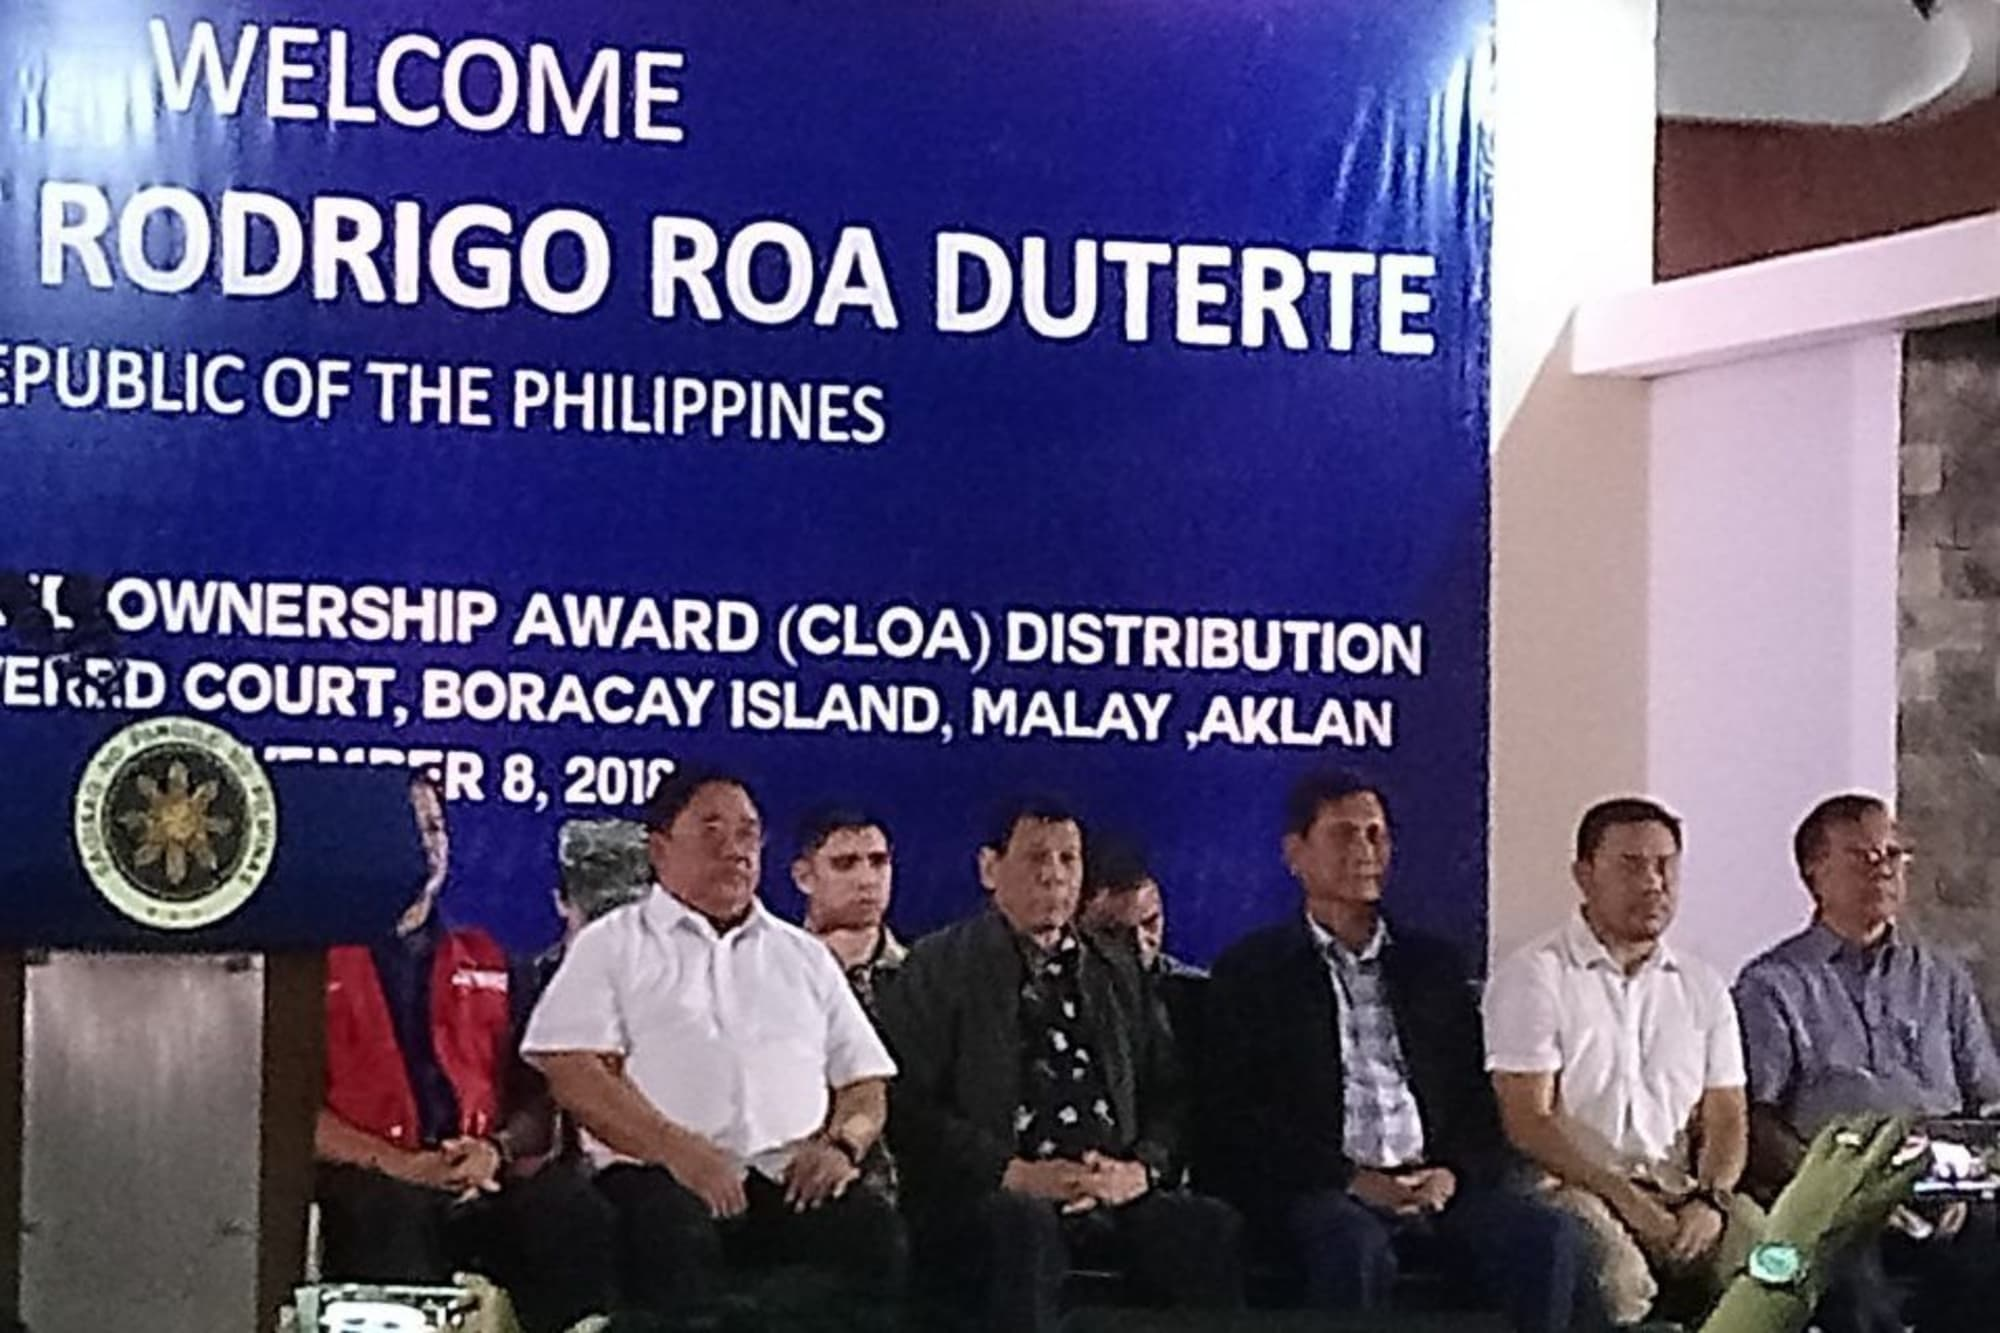 Duterte distributes land titles in Boracay